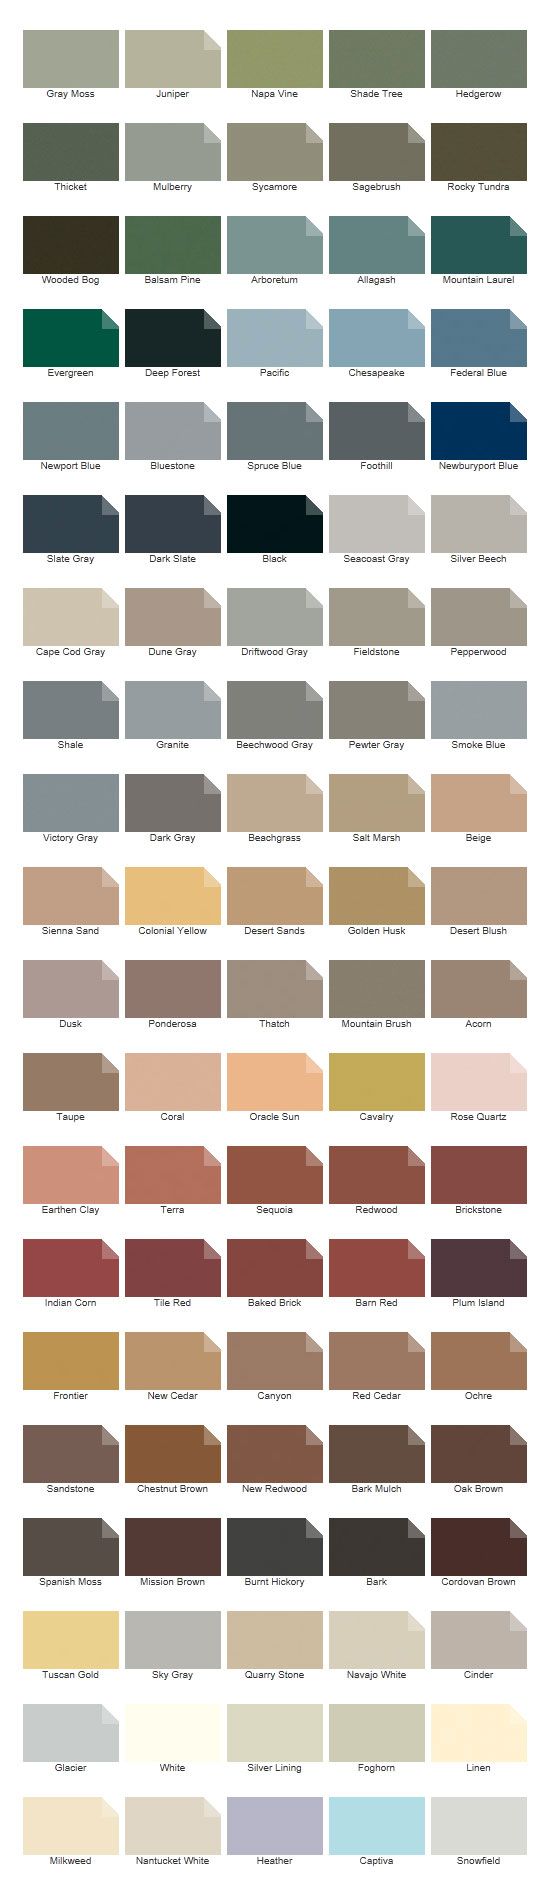 Wood Deck Stain, Deck Stain Colors, House Paint Colors, Sherwin Williams  Deck Stain